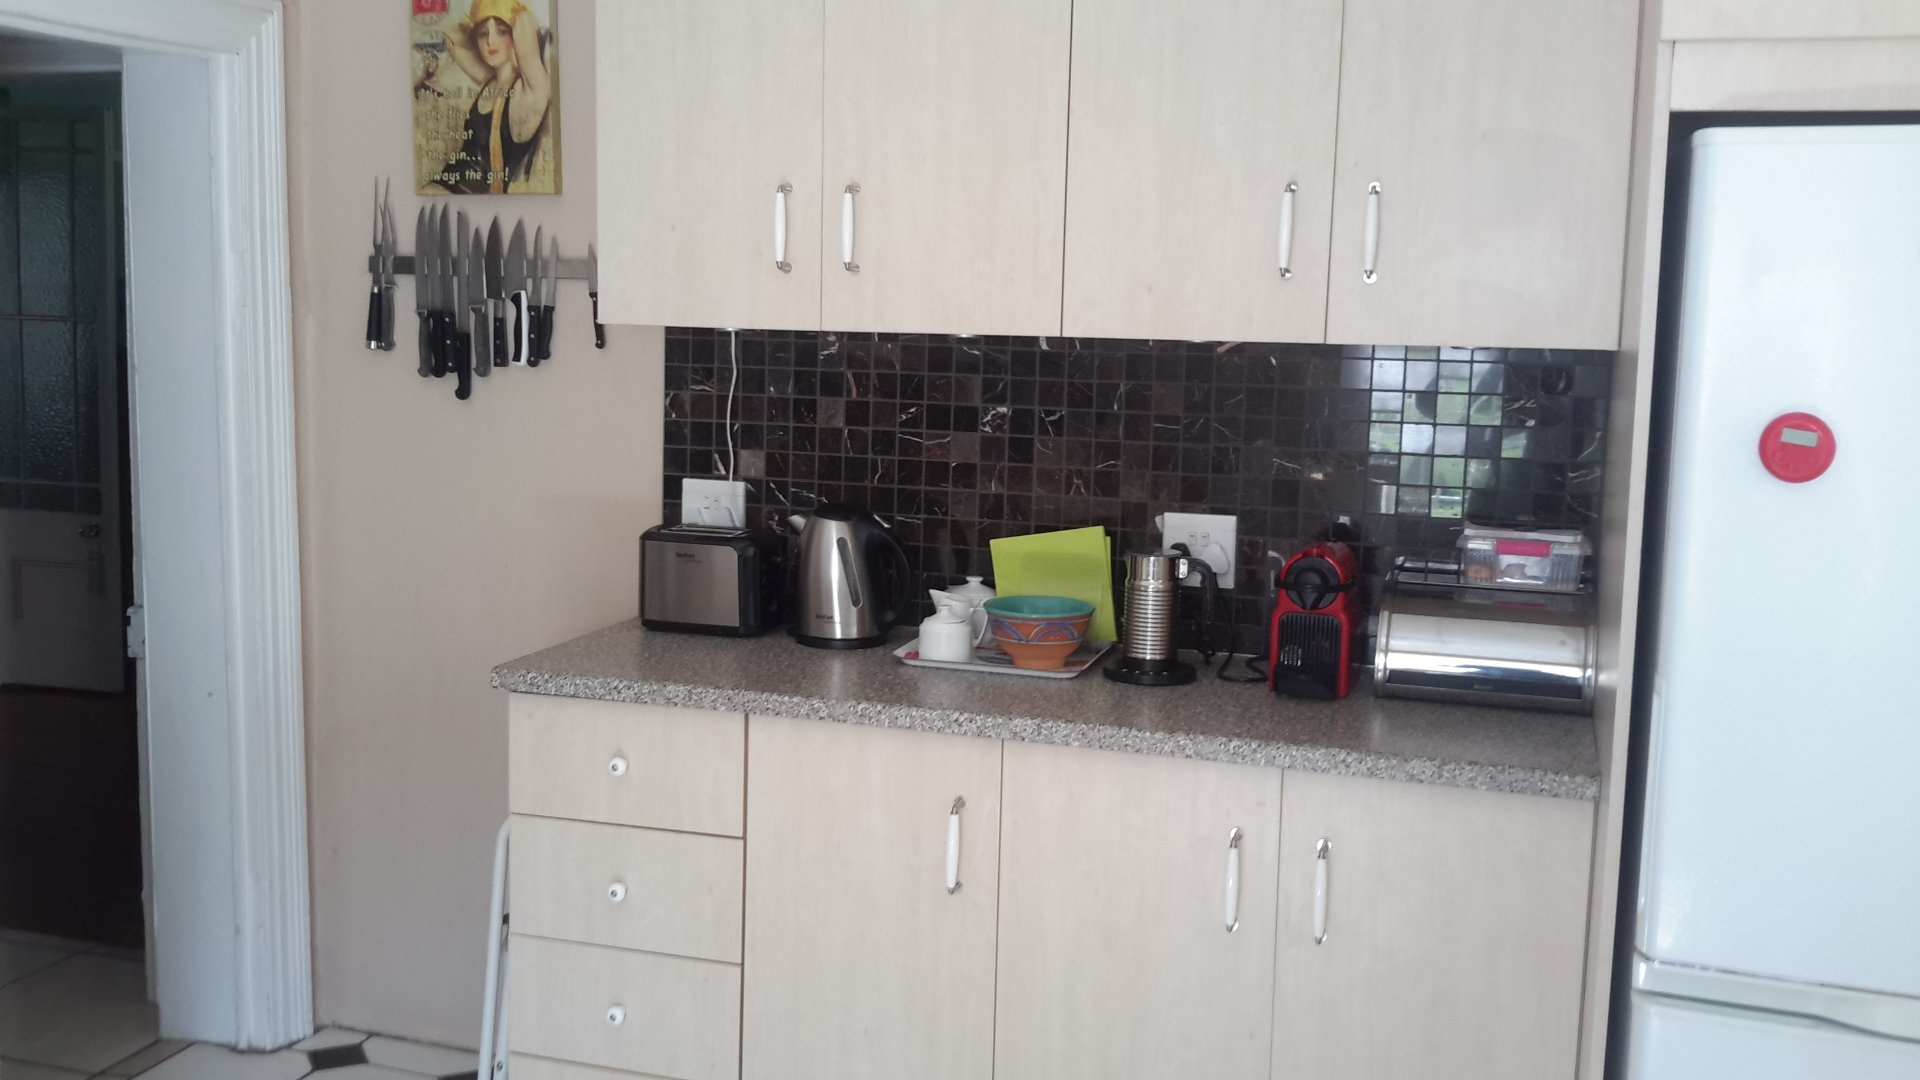 Kitchen of house